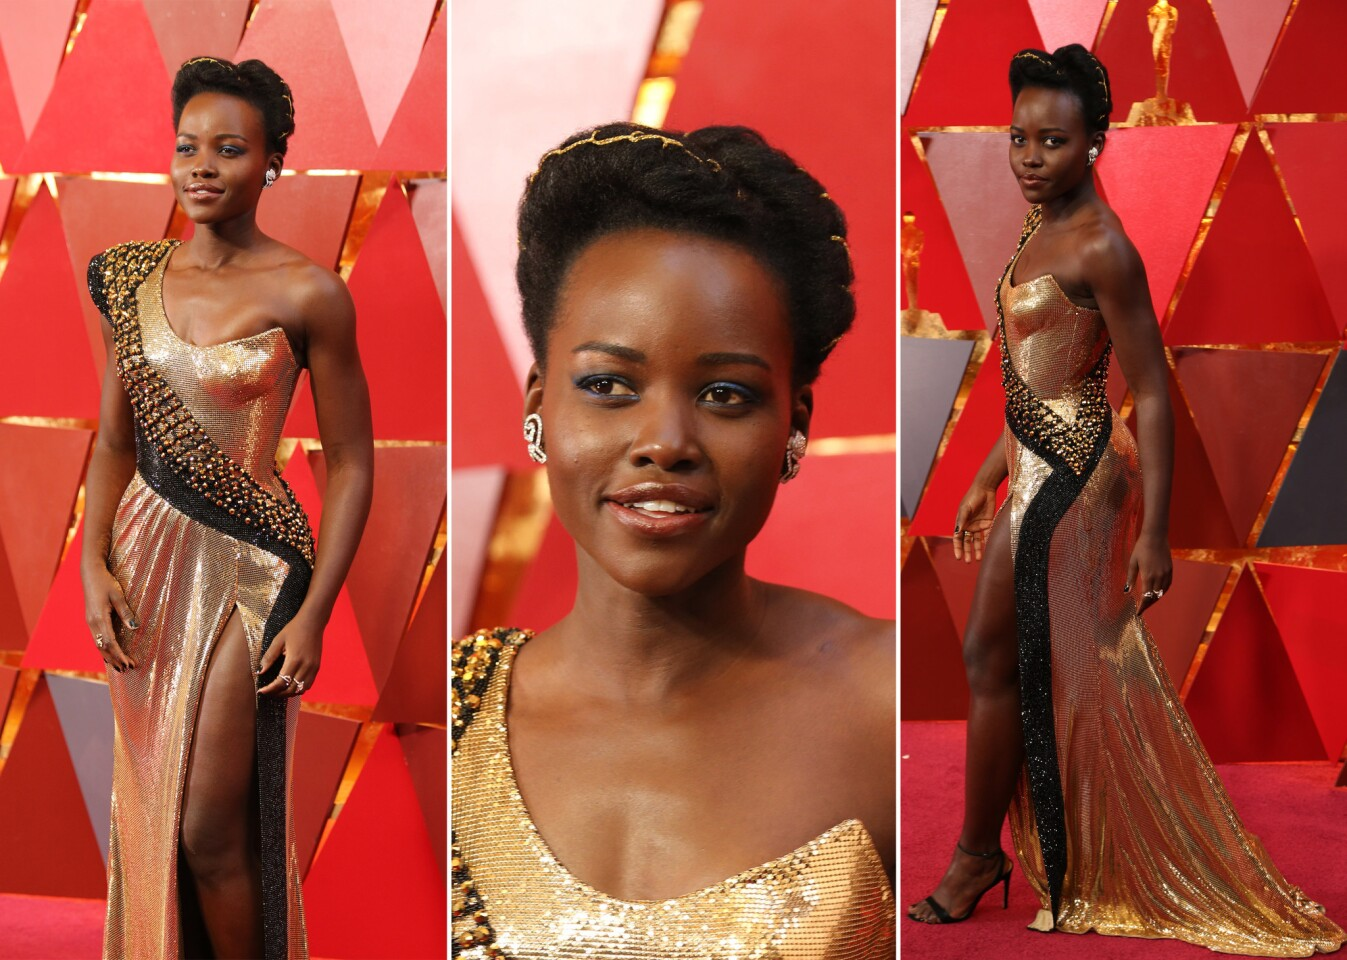 Lupita Nyong'o looks regal in gold and black. She makes our best-dressed list.